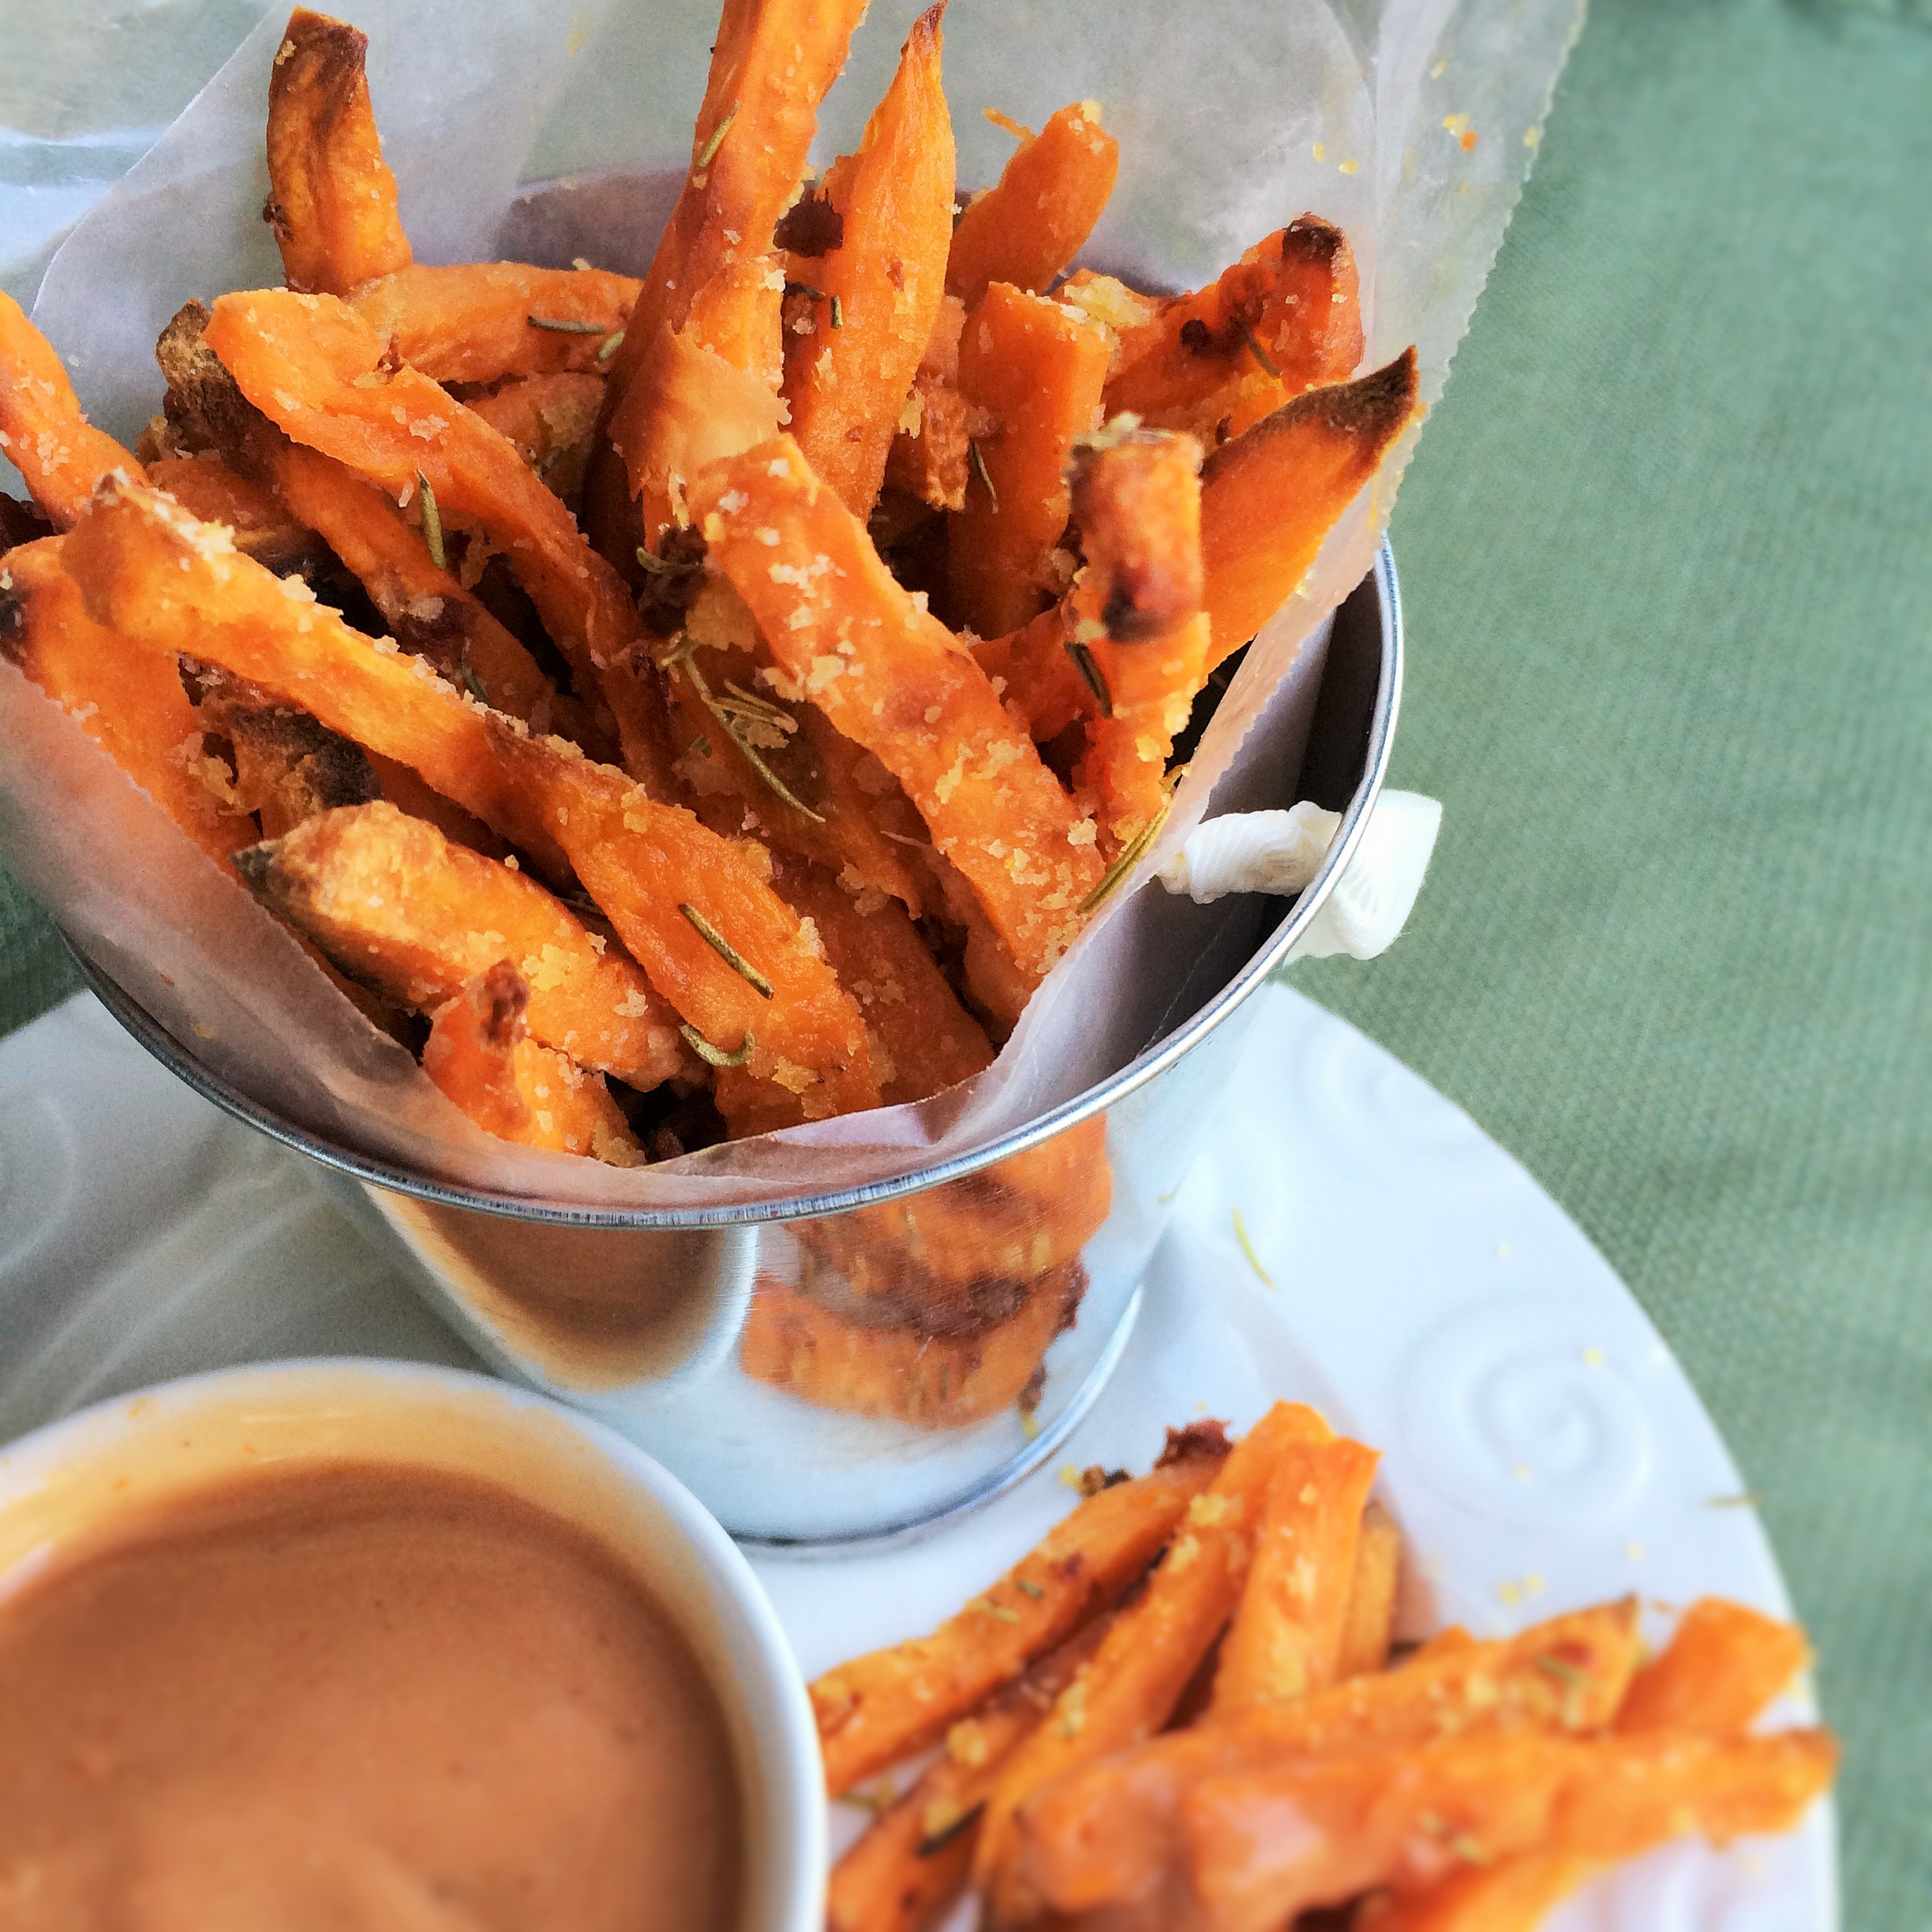 Parmesan Crusted Baked Sweet Potato Fries